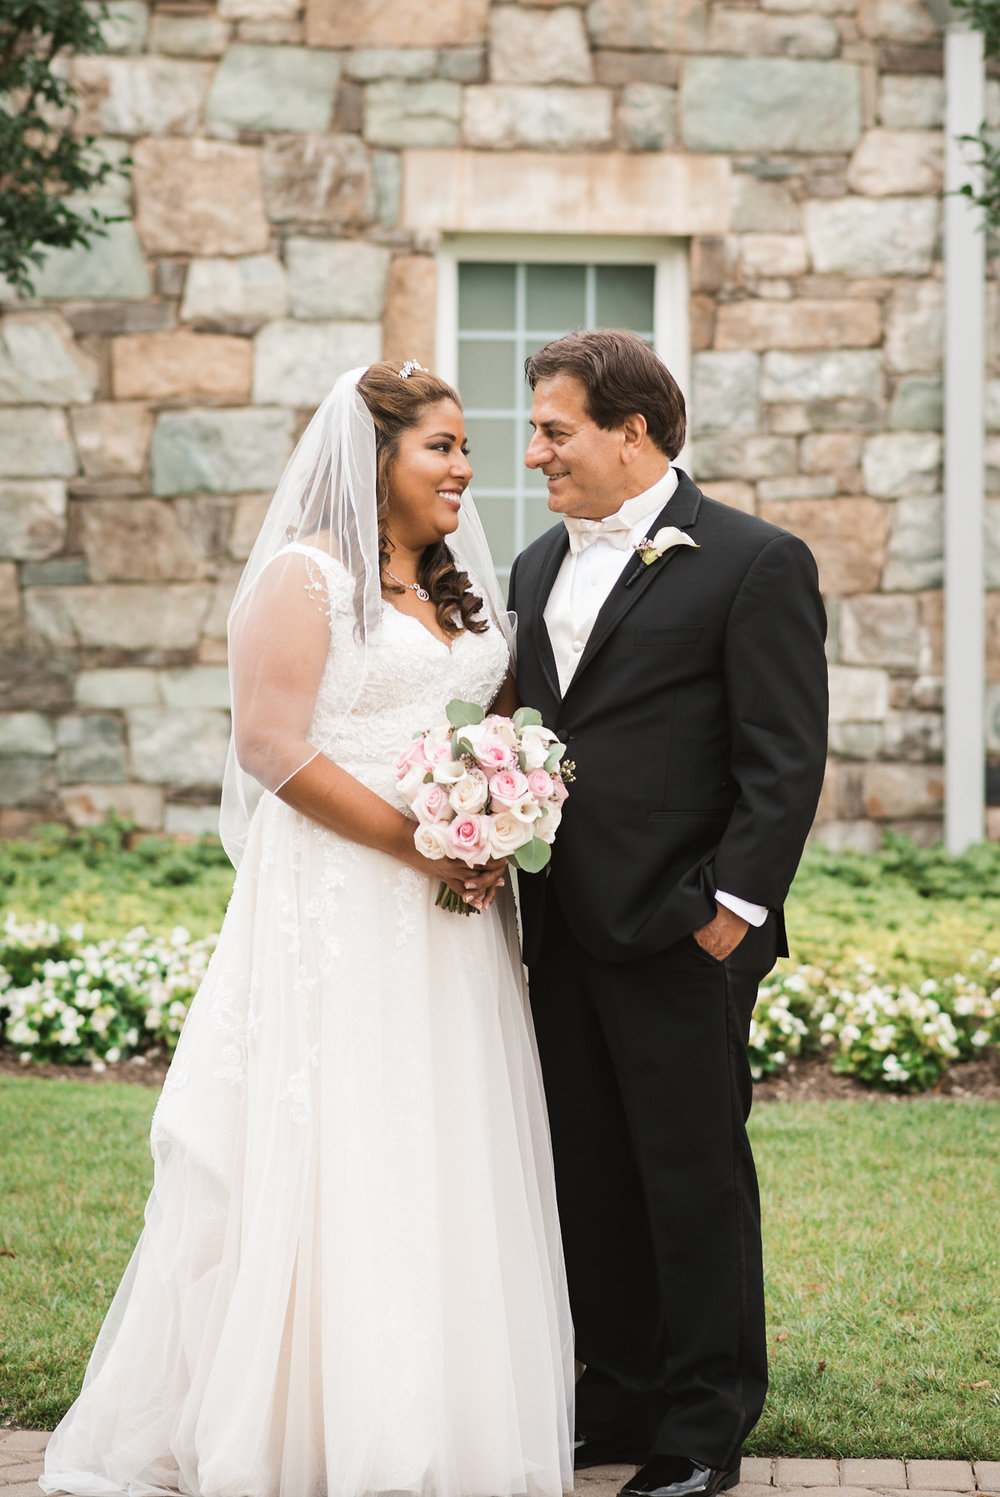 Bride and groom in front of stone building